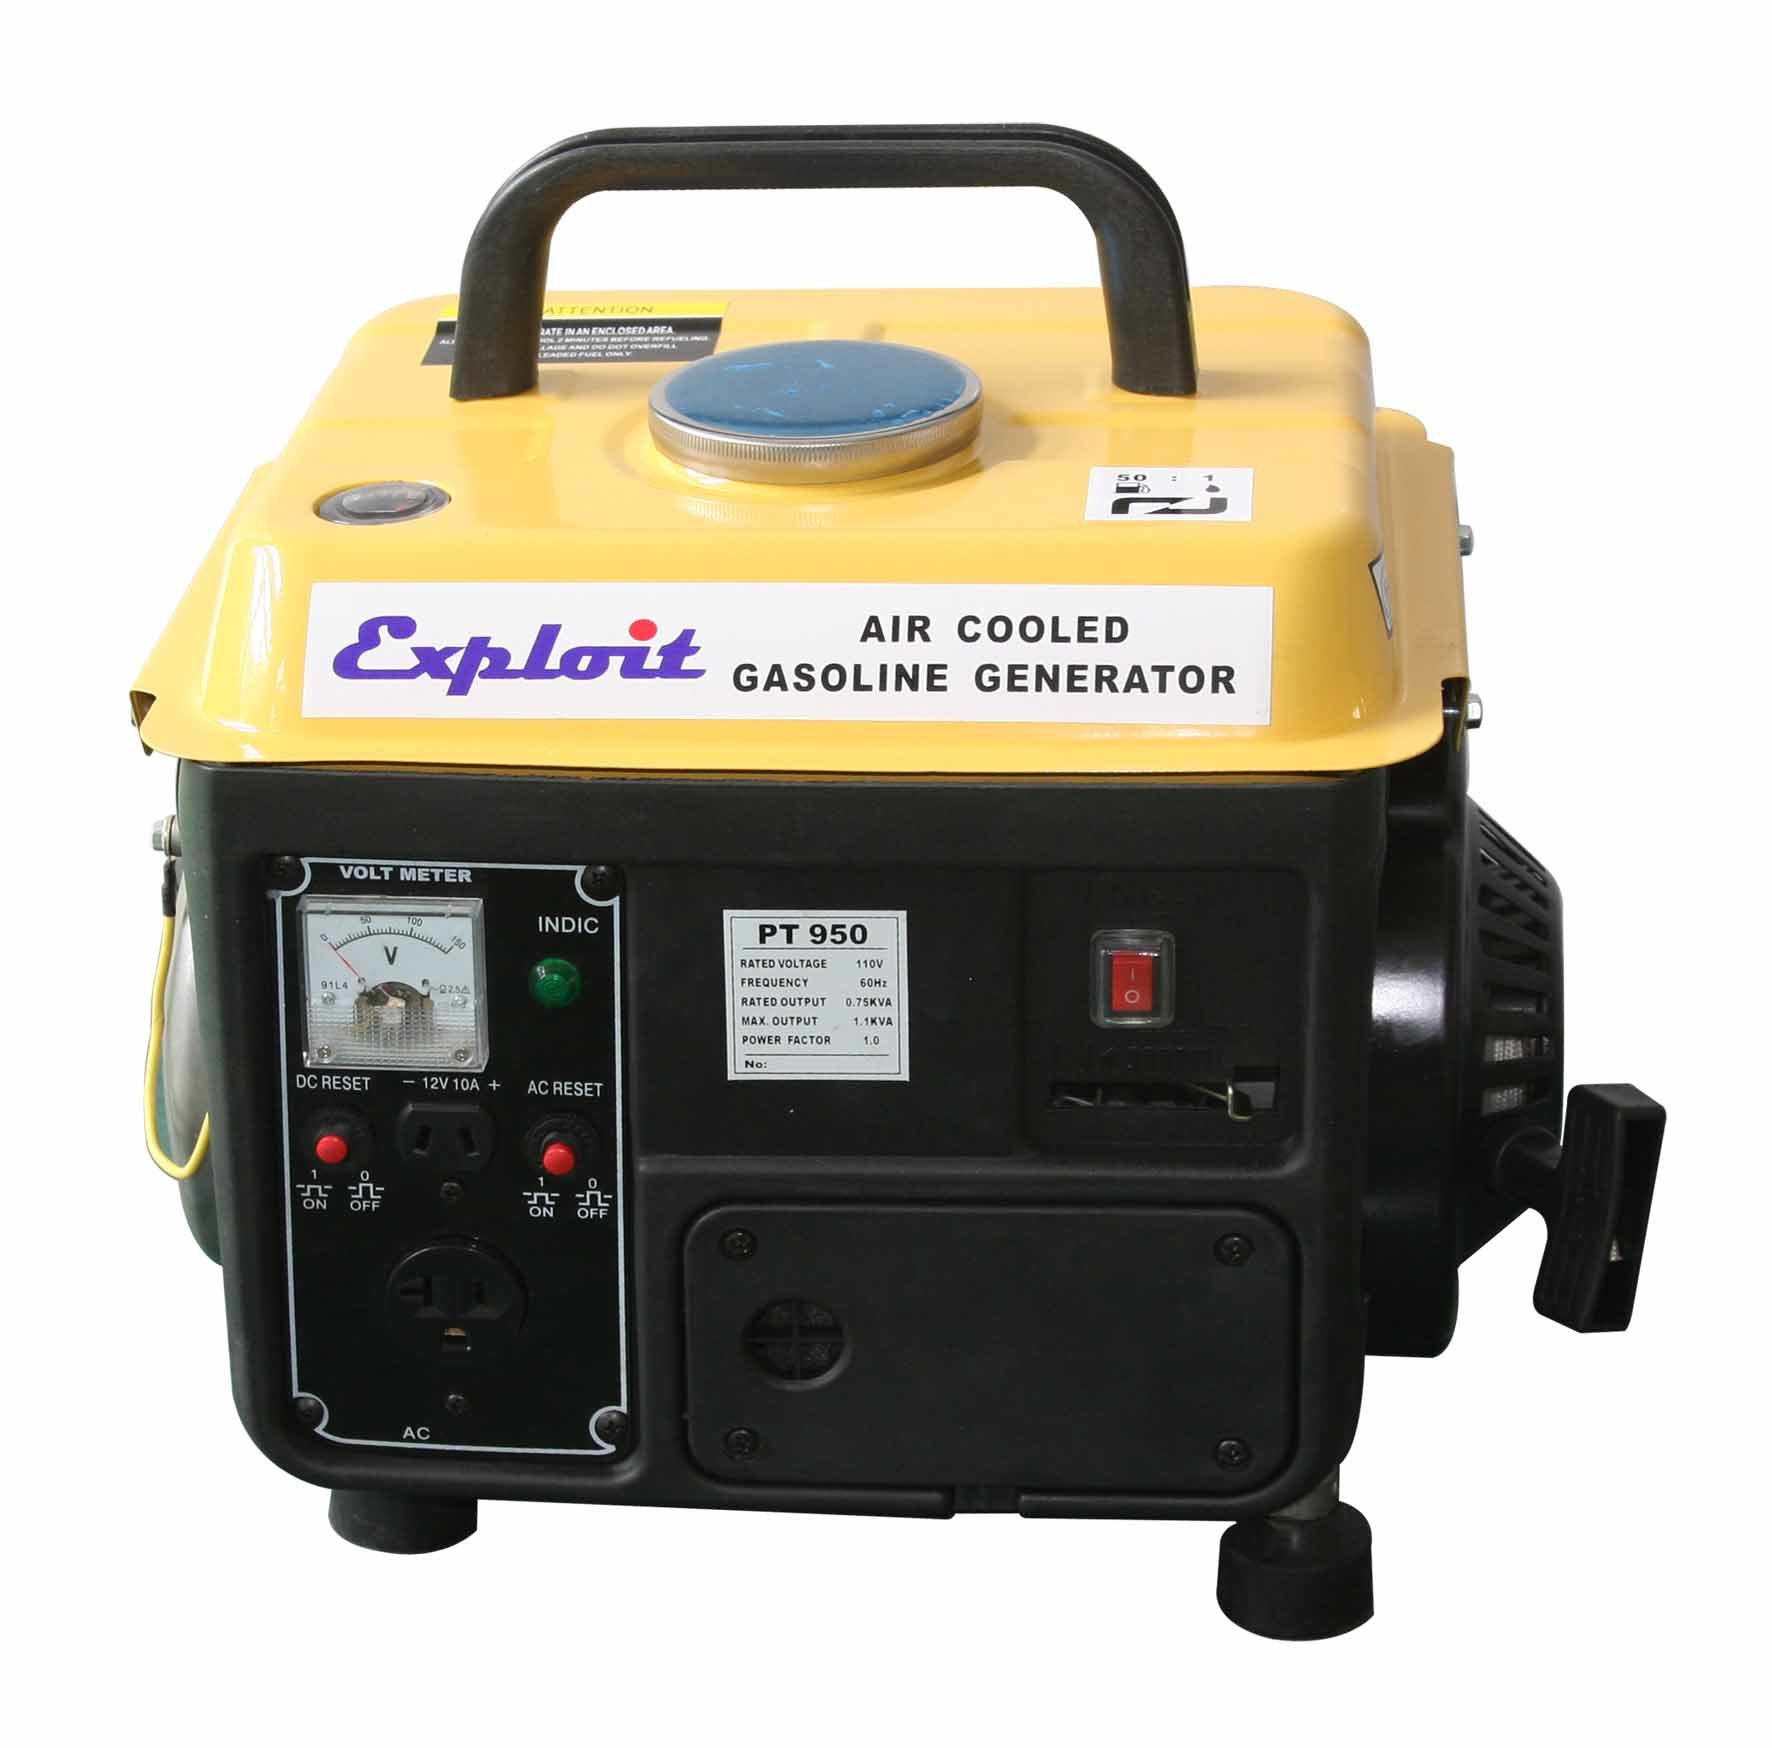 home depot virginia beach phone number with Portable Gasoline Generator China Gasoline on Portable Gasoline Generator China Gasoline also Fight club gifts also Slade in addition Slade likewise Emerald Hills Sherwood Park Walmart Clinic.